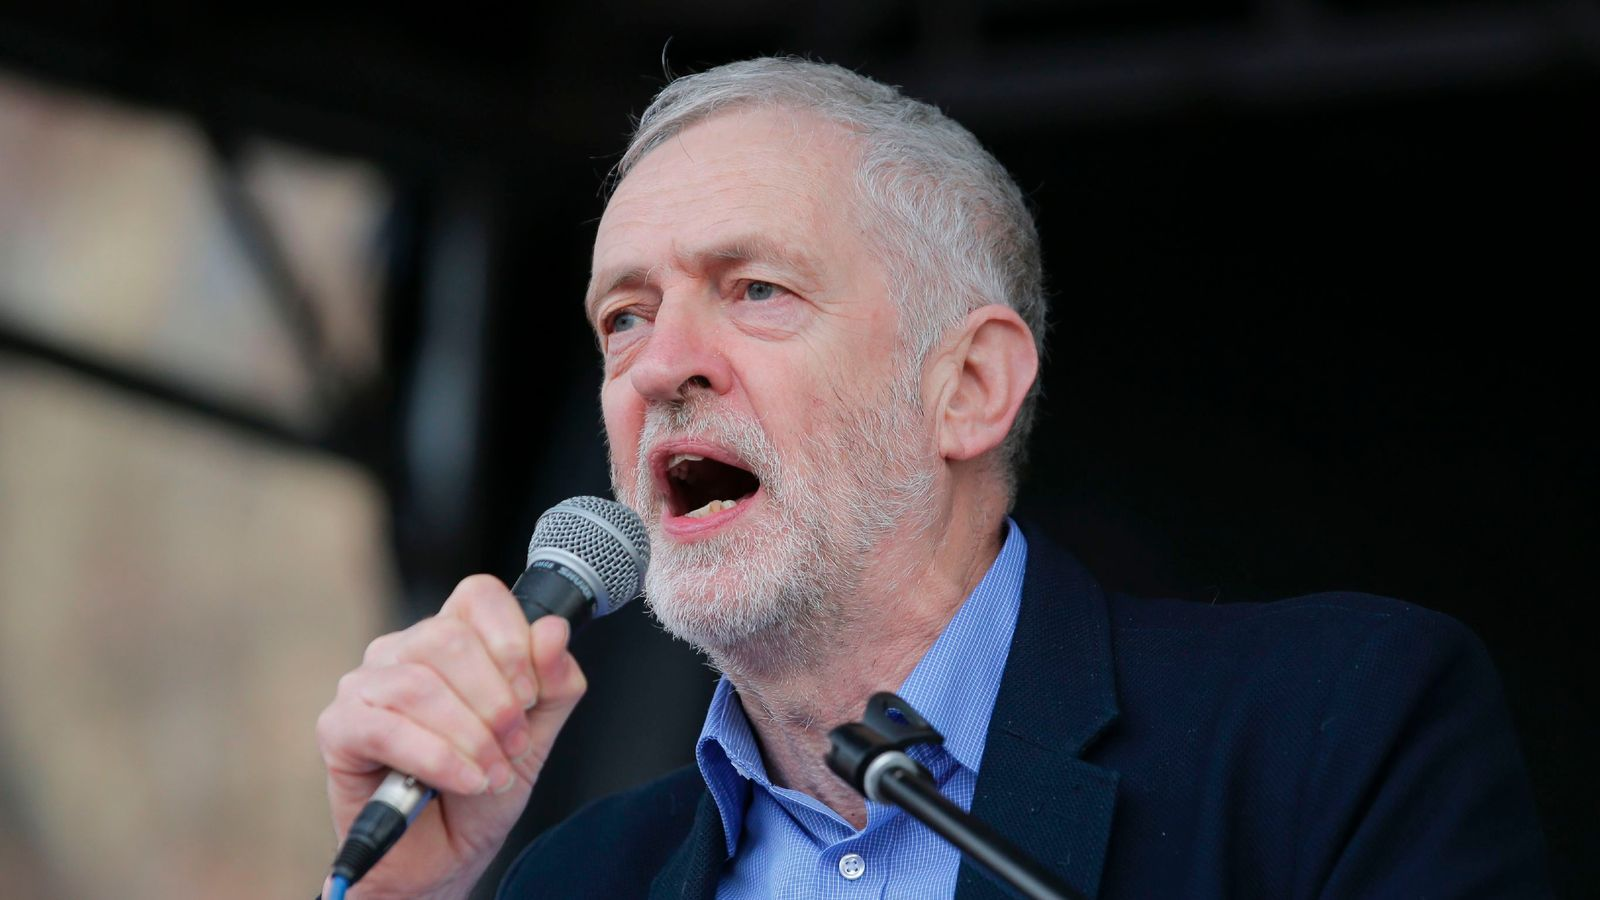 Jeremy Corbyn addresses an NHS rally in London